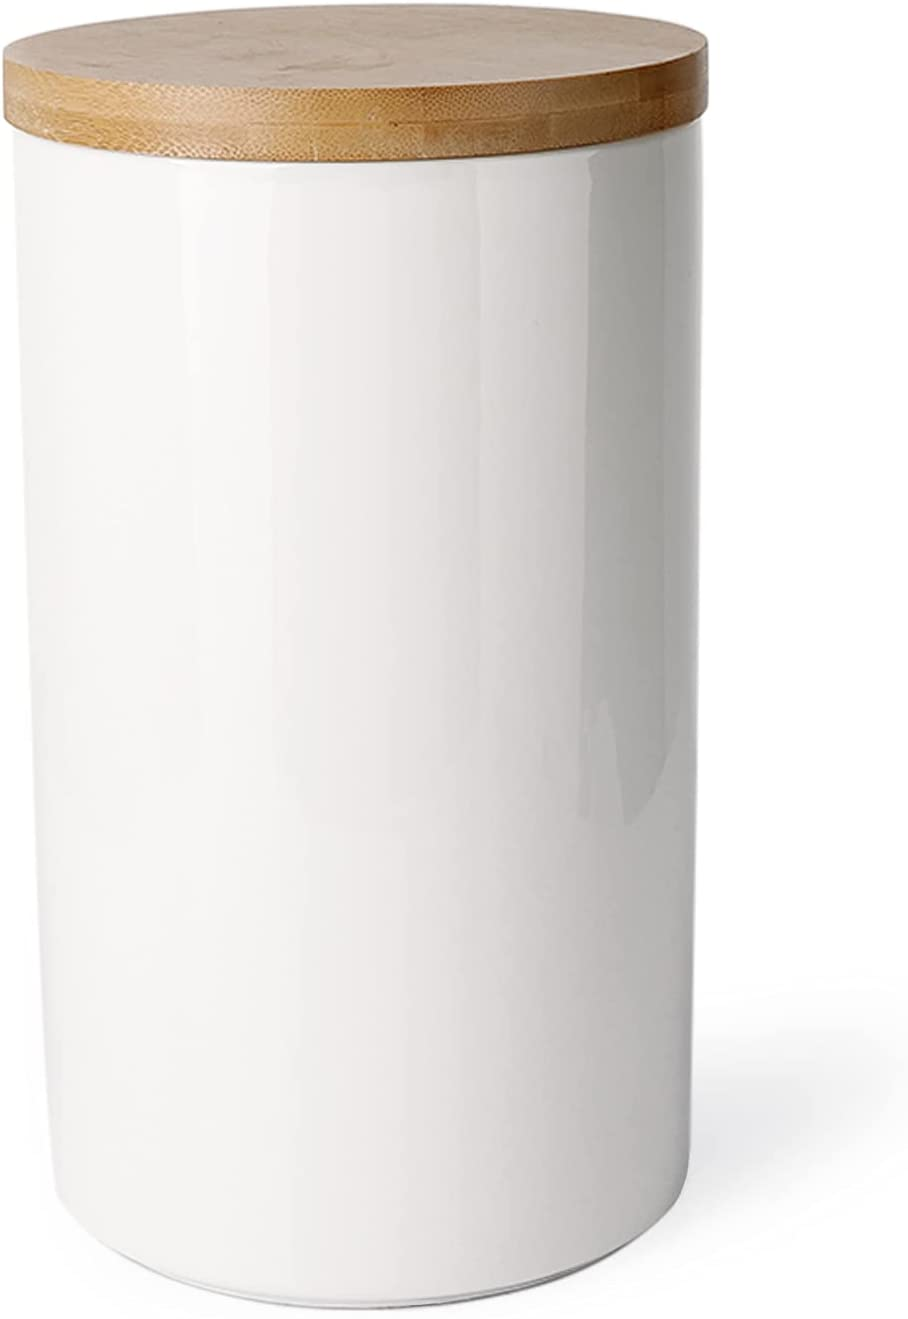 Sweese 817.101 Kitchen Canister, 65oz/1930ml Porcelain Food Storage Jar with Bamboo Lid for Ground Coffee, Flour, Tea, Sugar, Airtight Coffee Container, White